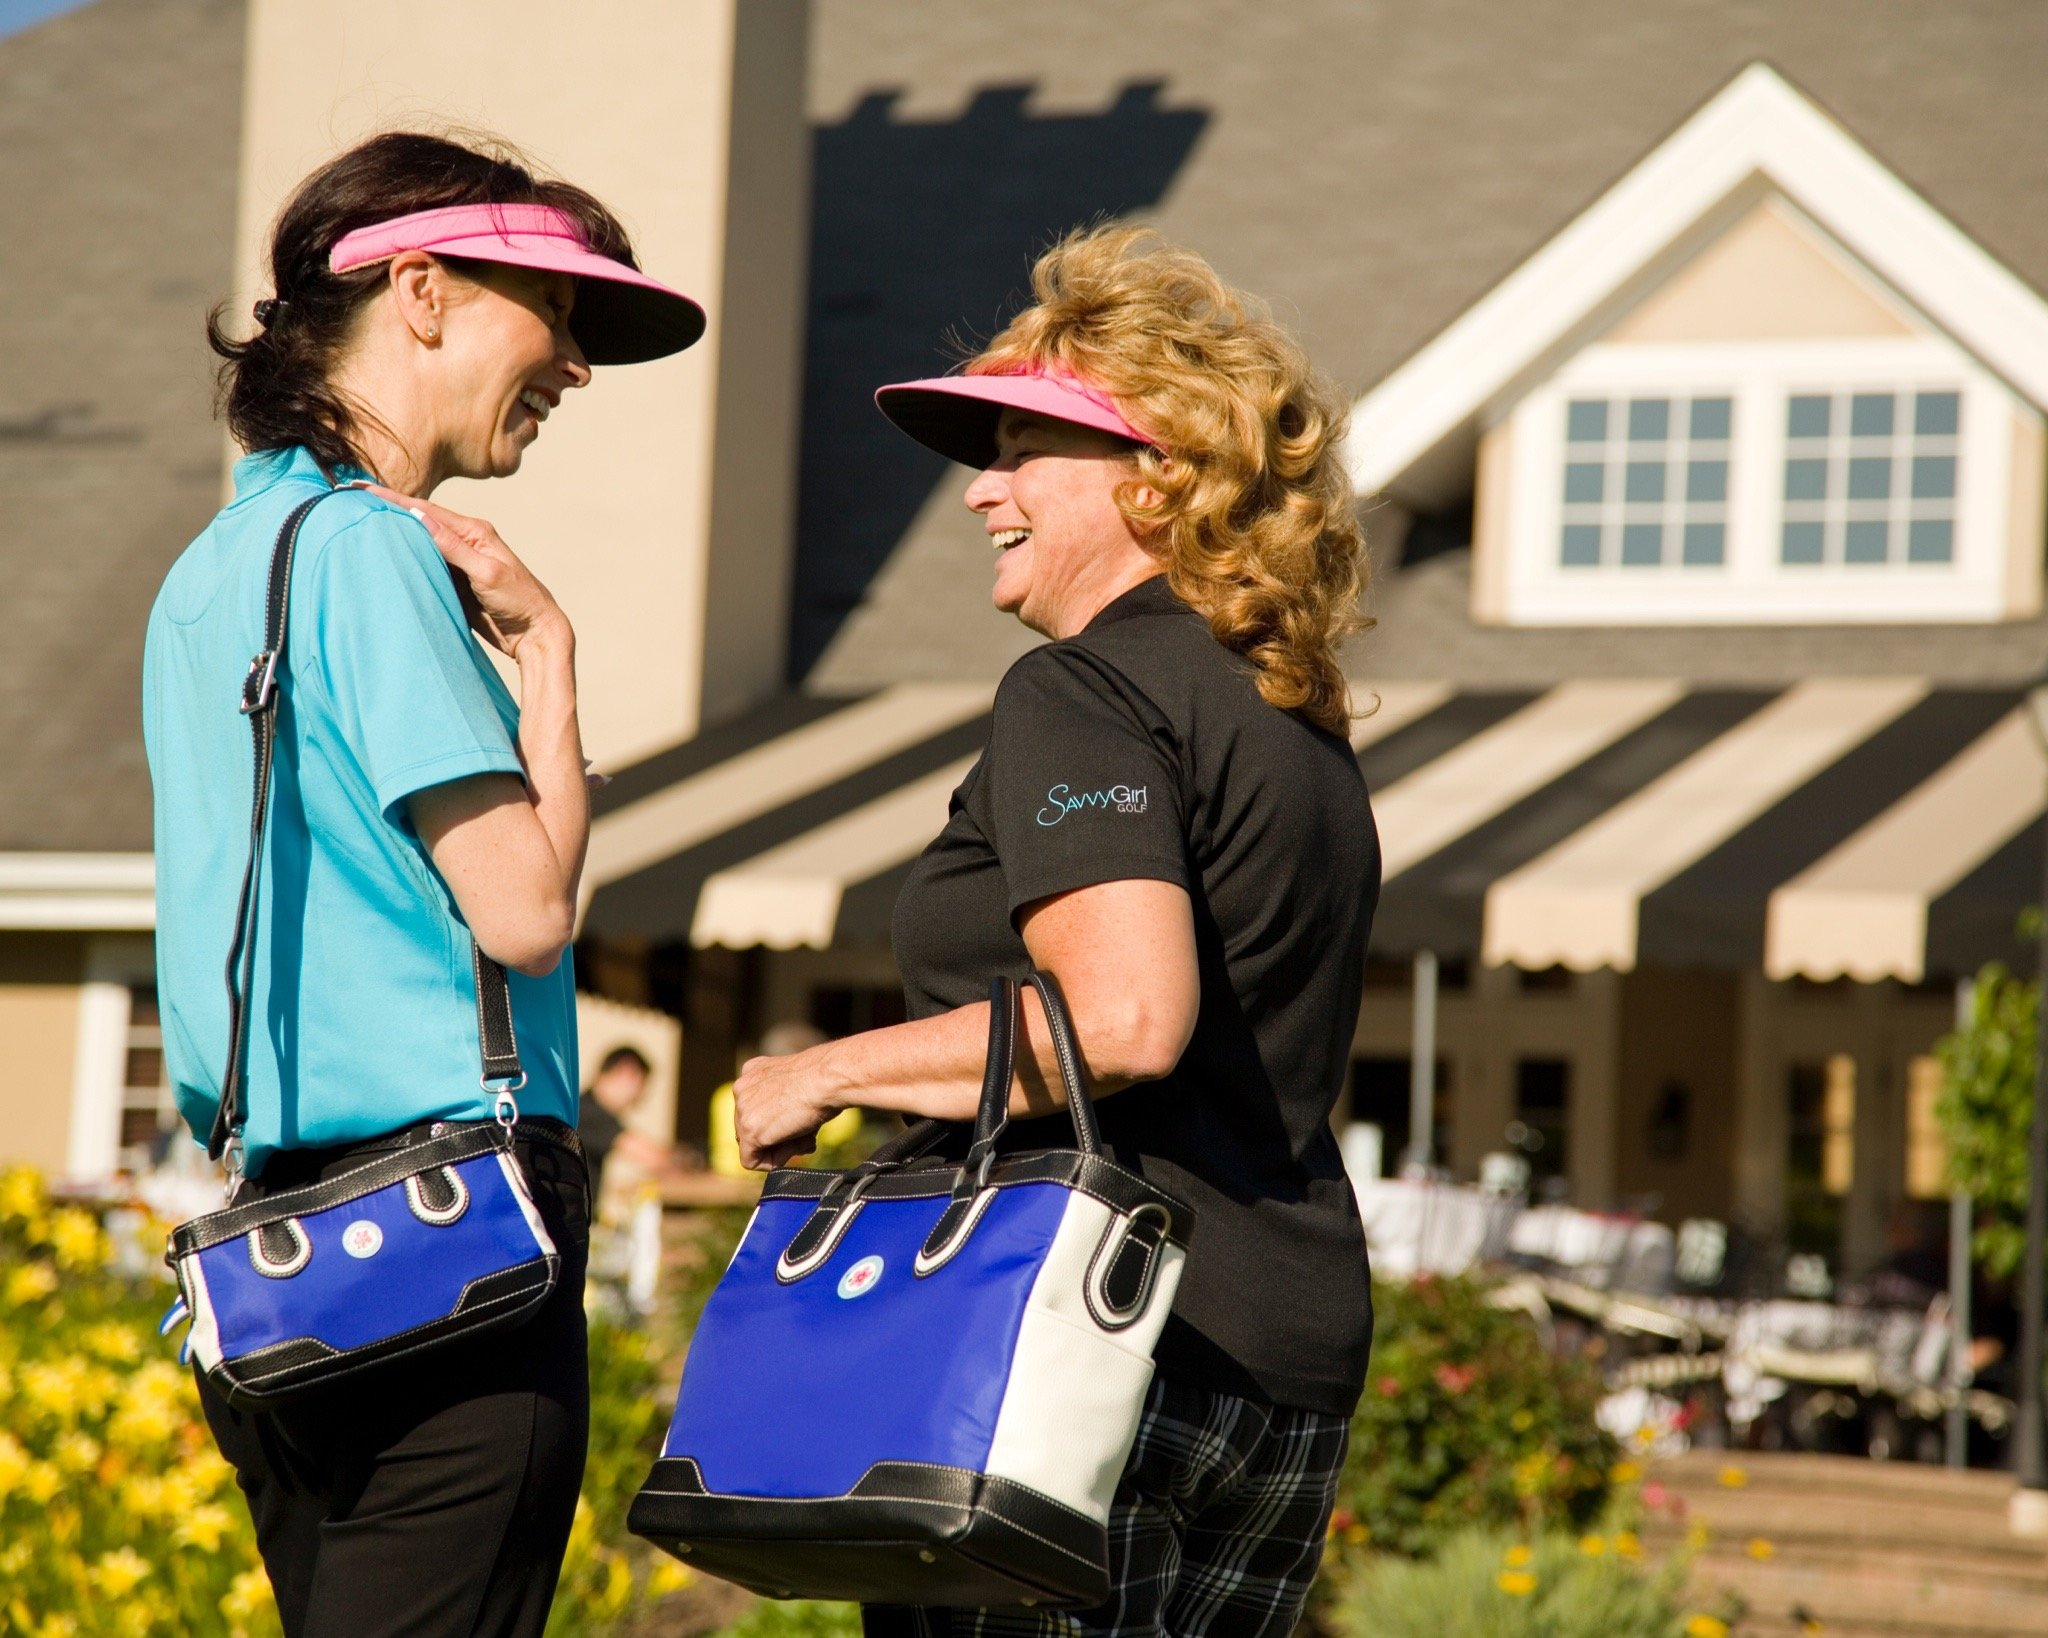 Savvy Girl Golf Signature Purse Keeps You Fashionable & Elegantly Organized by Savvy Girl Golf